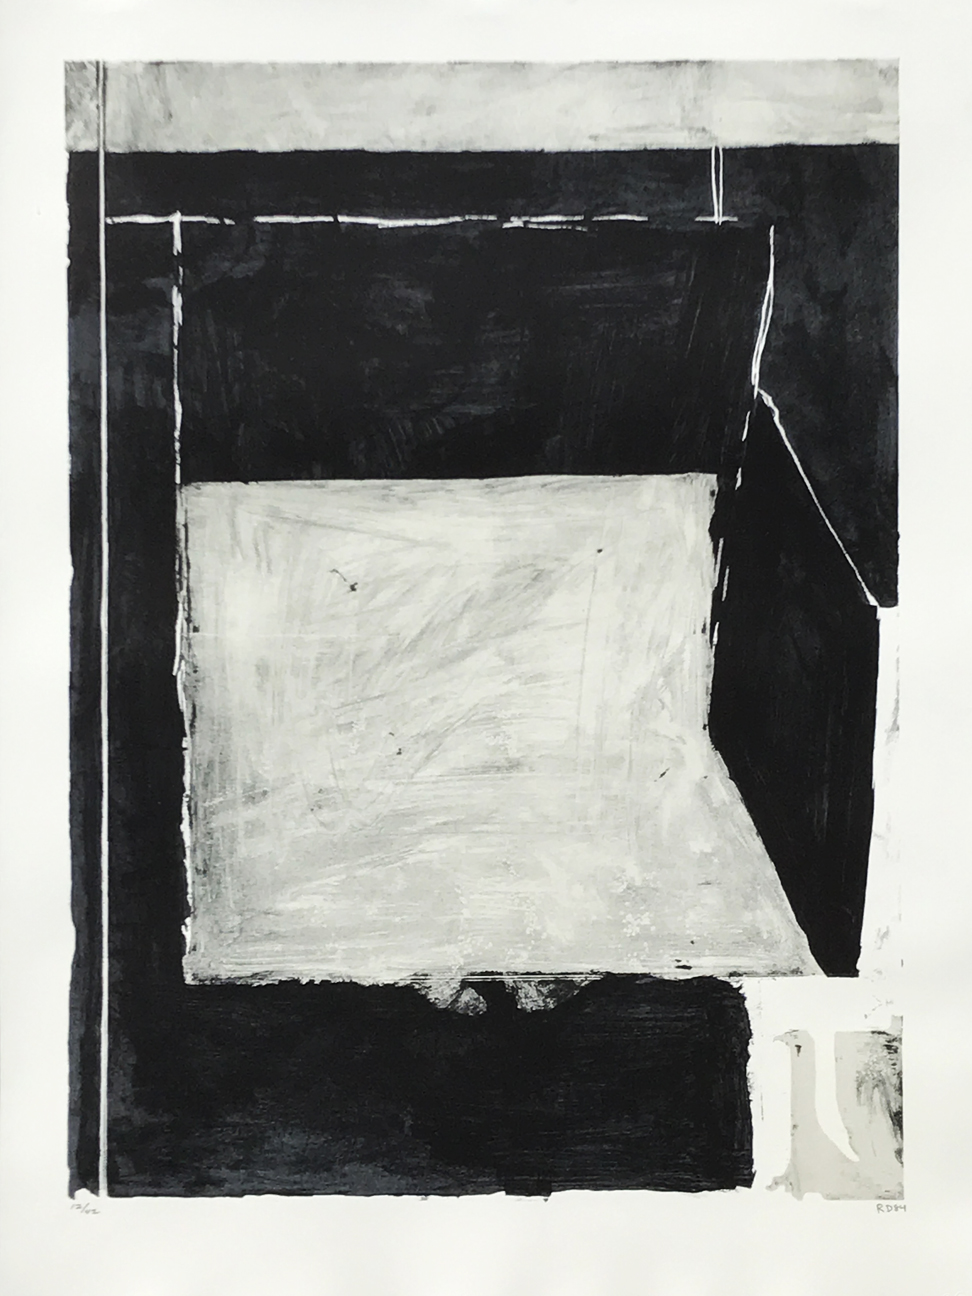 2.Richard Diebenkorn. Black and Grey, 1984. 3 color lithograph, ed. 12/42, 30 x 21 7/8 in.